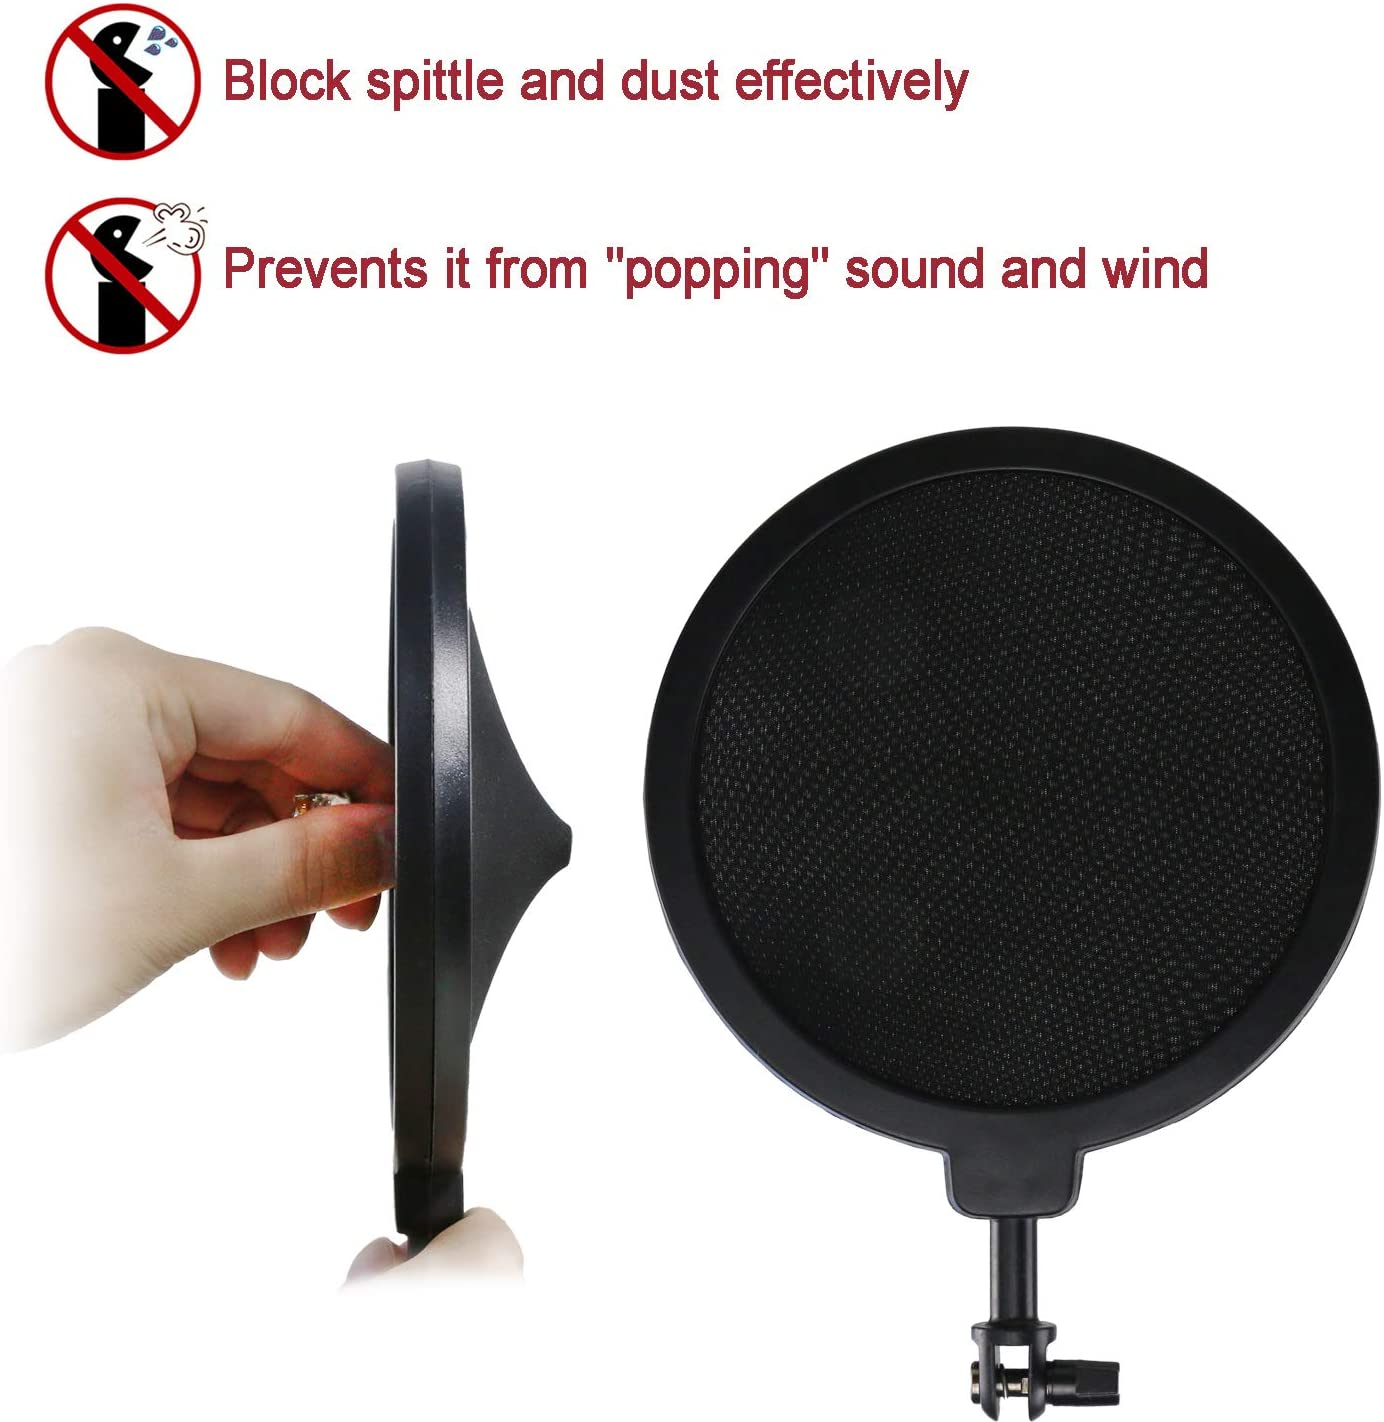 Windscreen and Shockmount to Reduce Vibration Noise Matching Mic Boom Arm for Blue Spark SL Microphone by YOUSHARES Blue Spark Shock Mount with Pop Filter